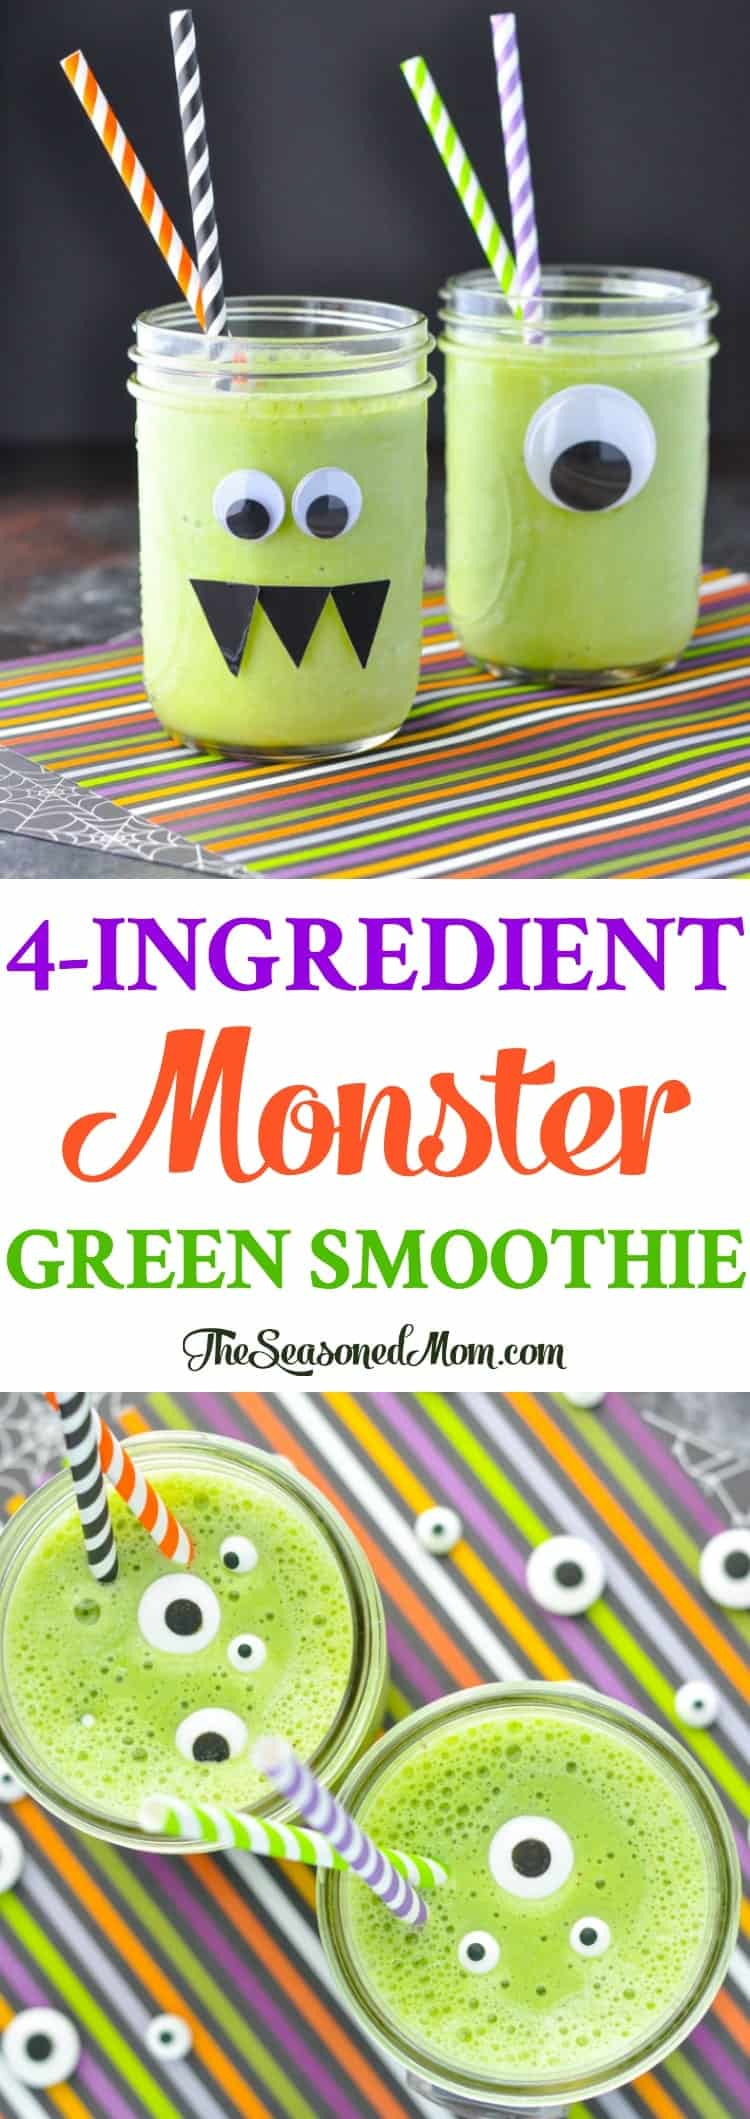 A 4-Ingredient Monster Green Smoothie is a healthy breakfast for Halloween morning! Healthy Recipes | Smoothie Recipes | Halloween Food | Halloween Party